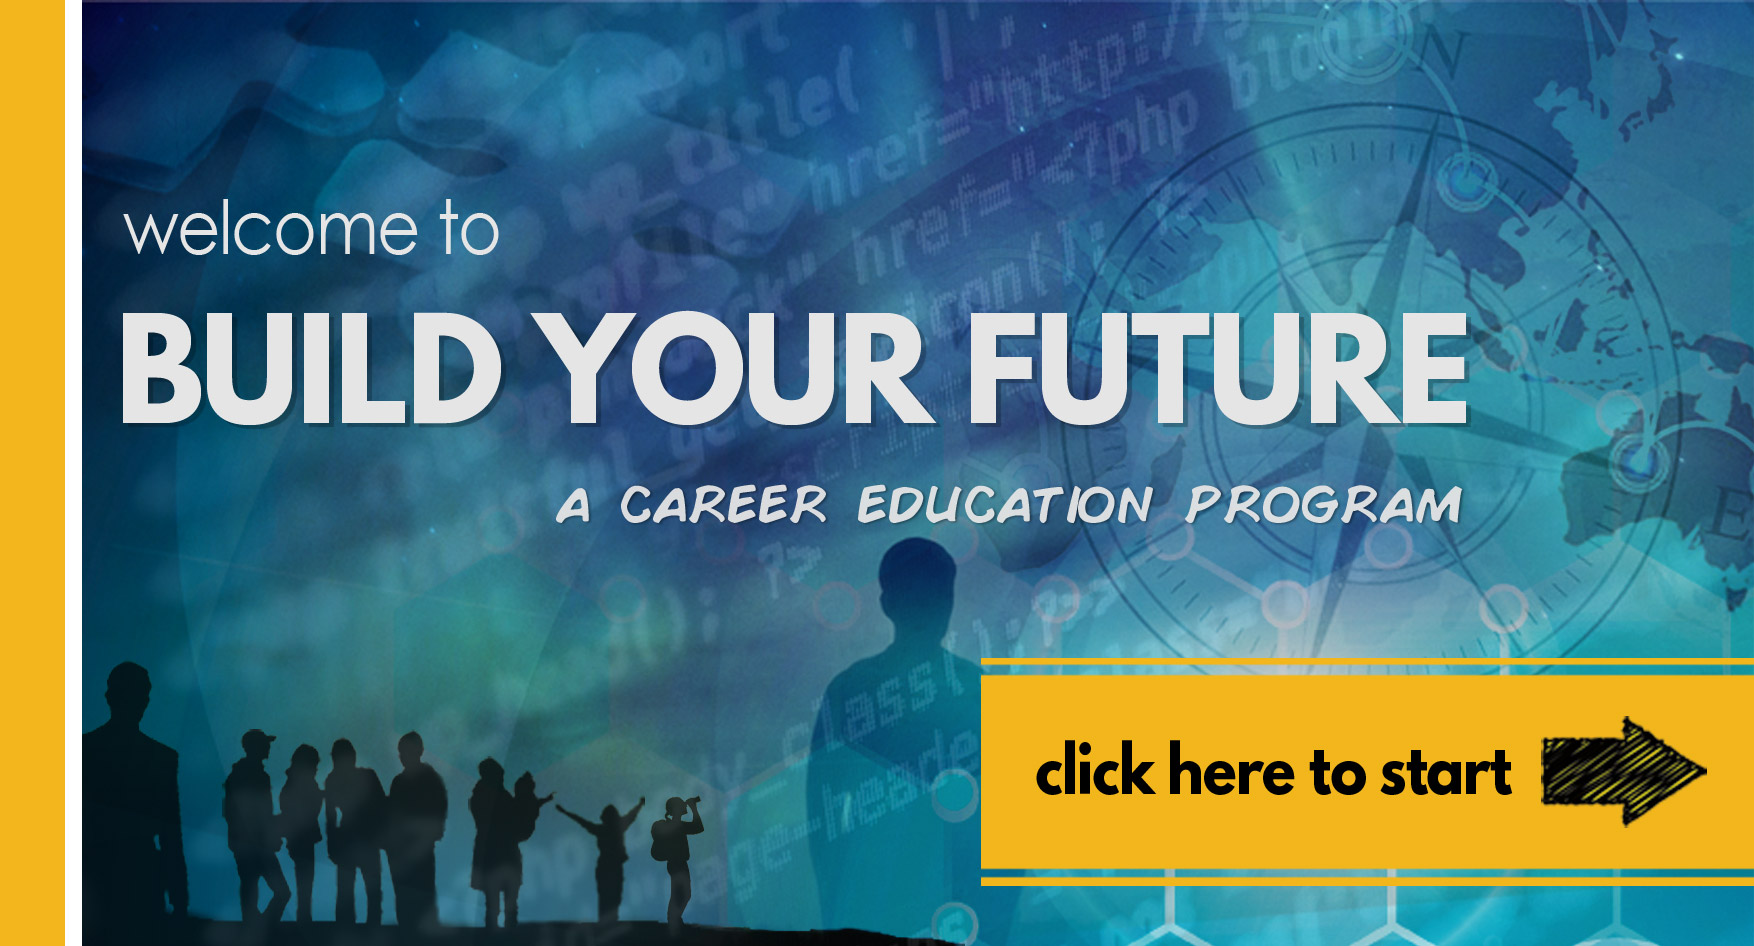 Welcome to BUILD YOUR FUTURE. Click here to log in.